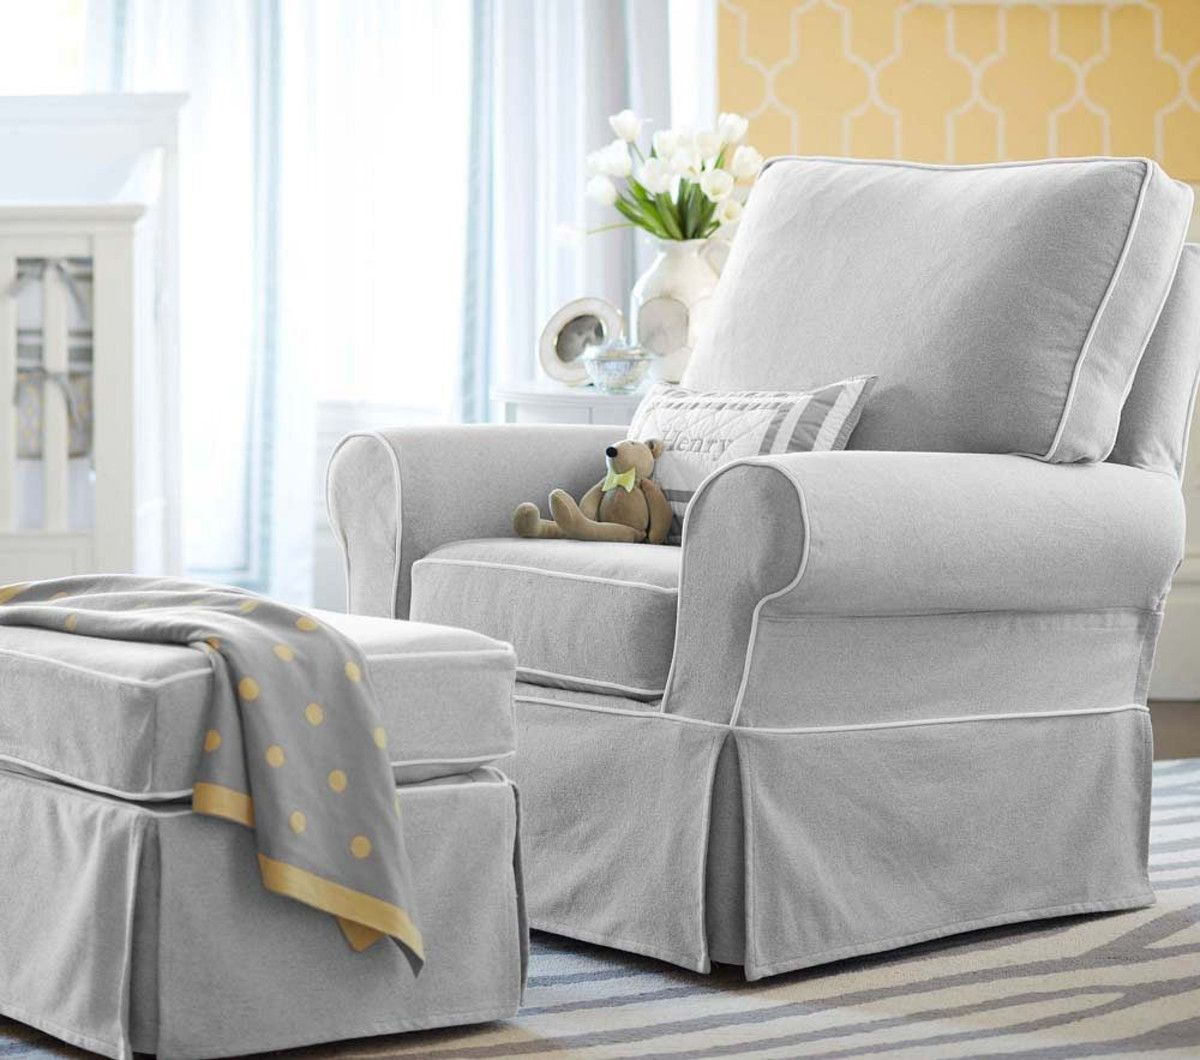 Baby Nursing Chair The Most Comfortable Nursing Chair And Ottoman Comfort